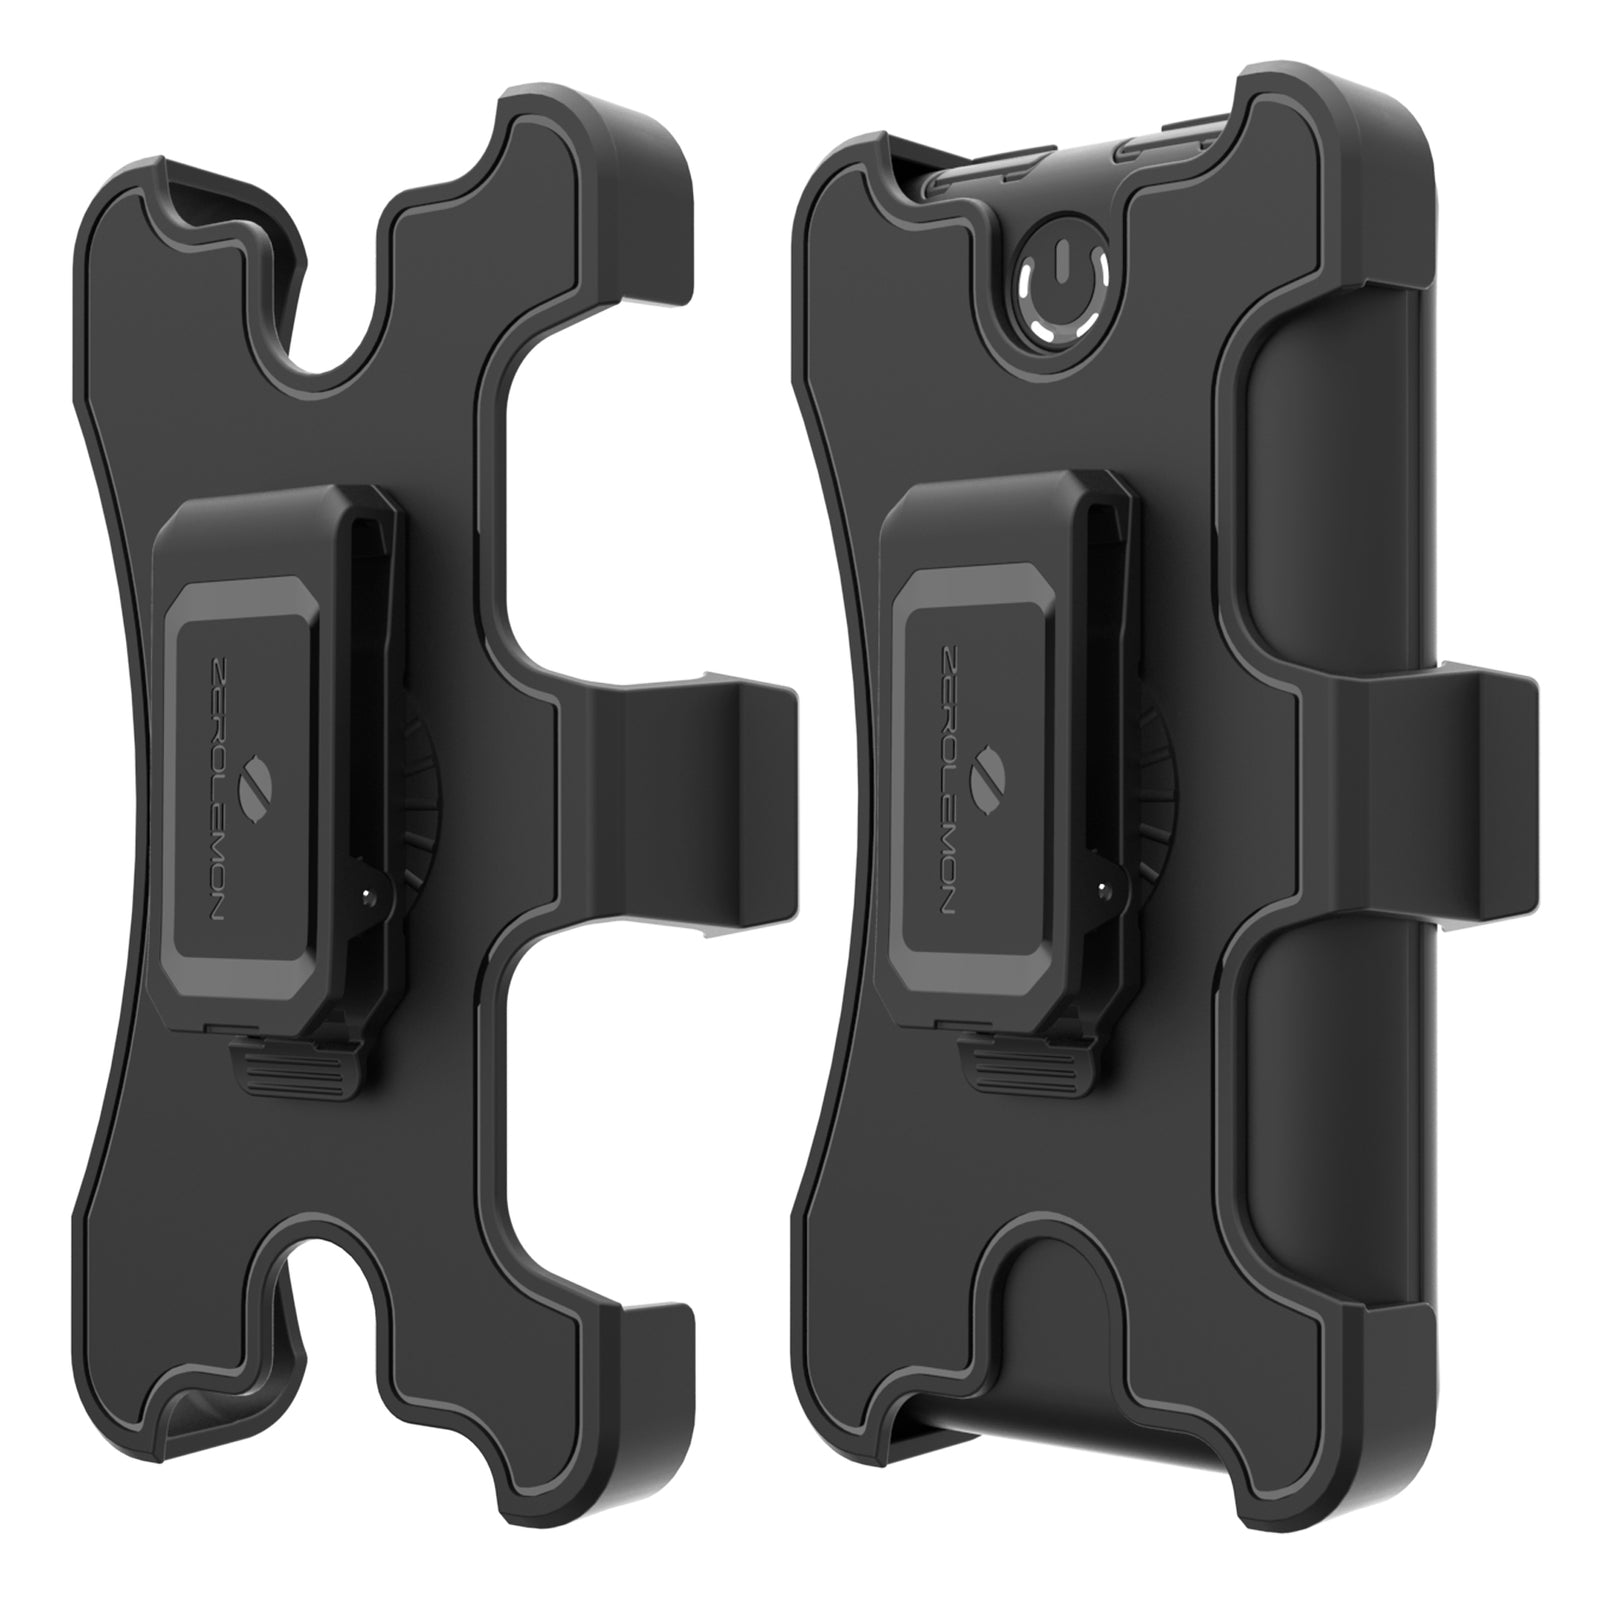 Belt Clip Holster for ZeroLemon ToughJuice 30000mAh Battery Charger